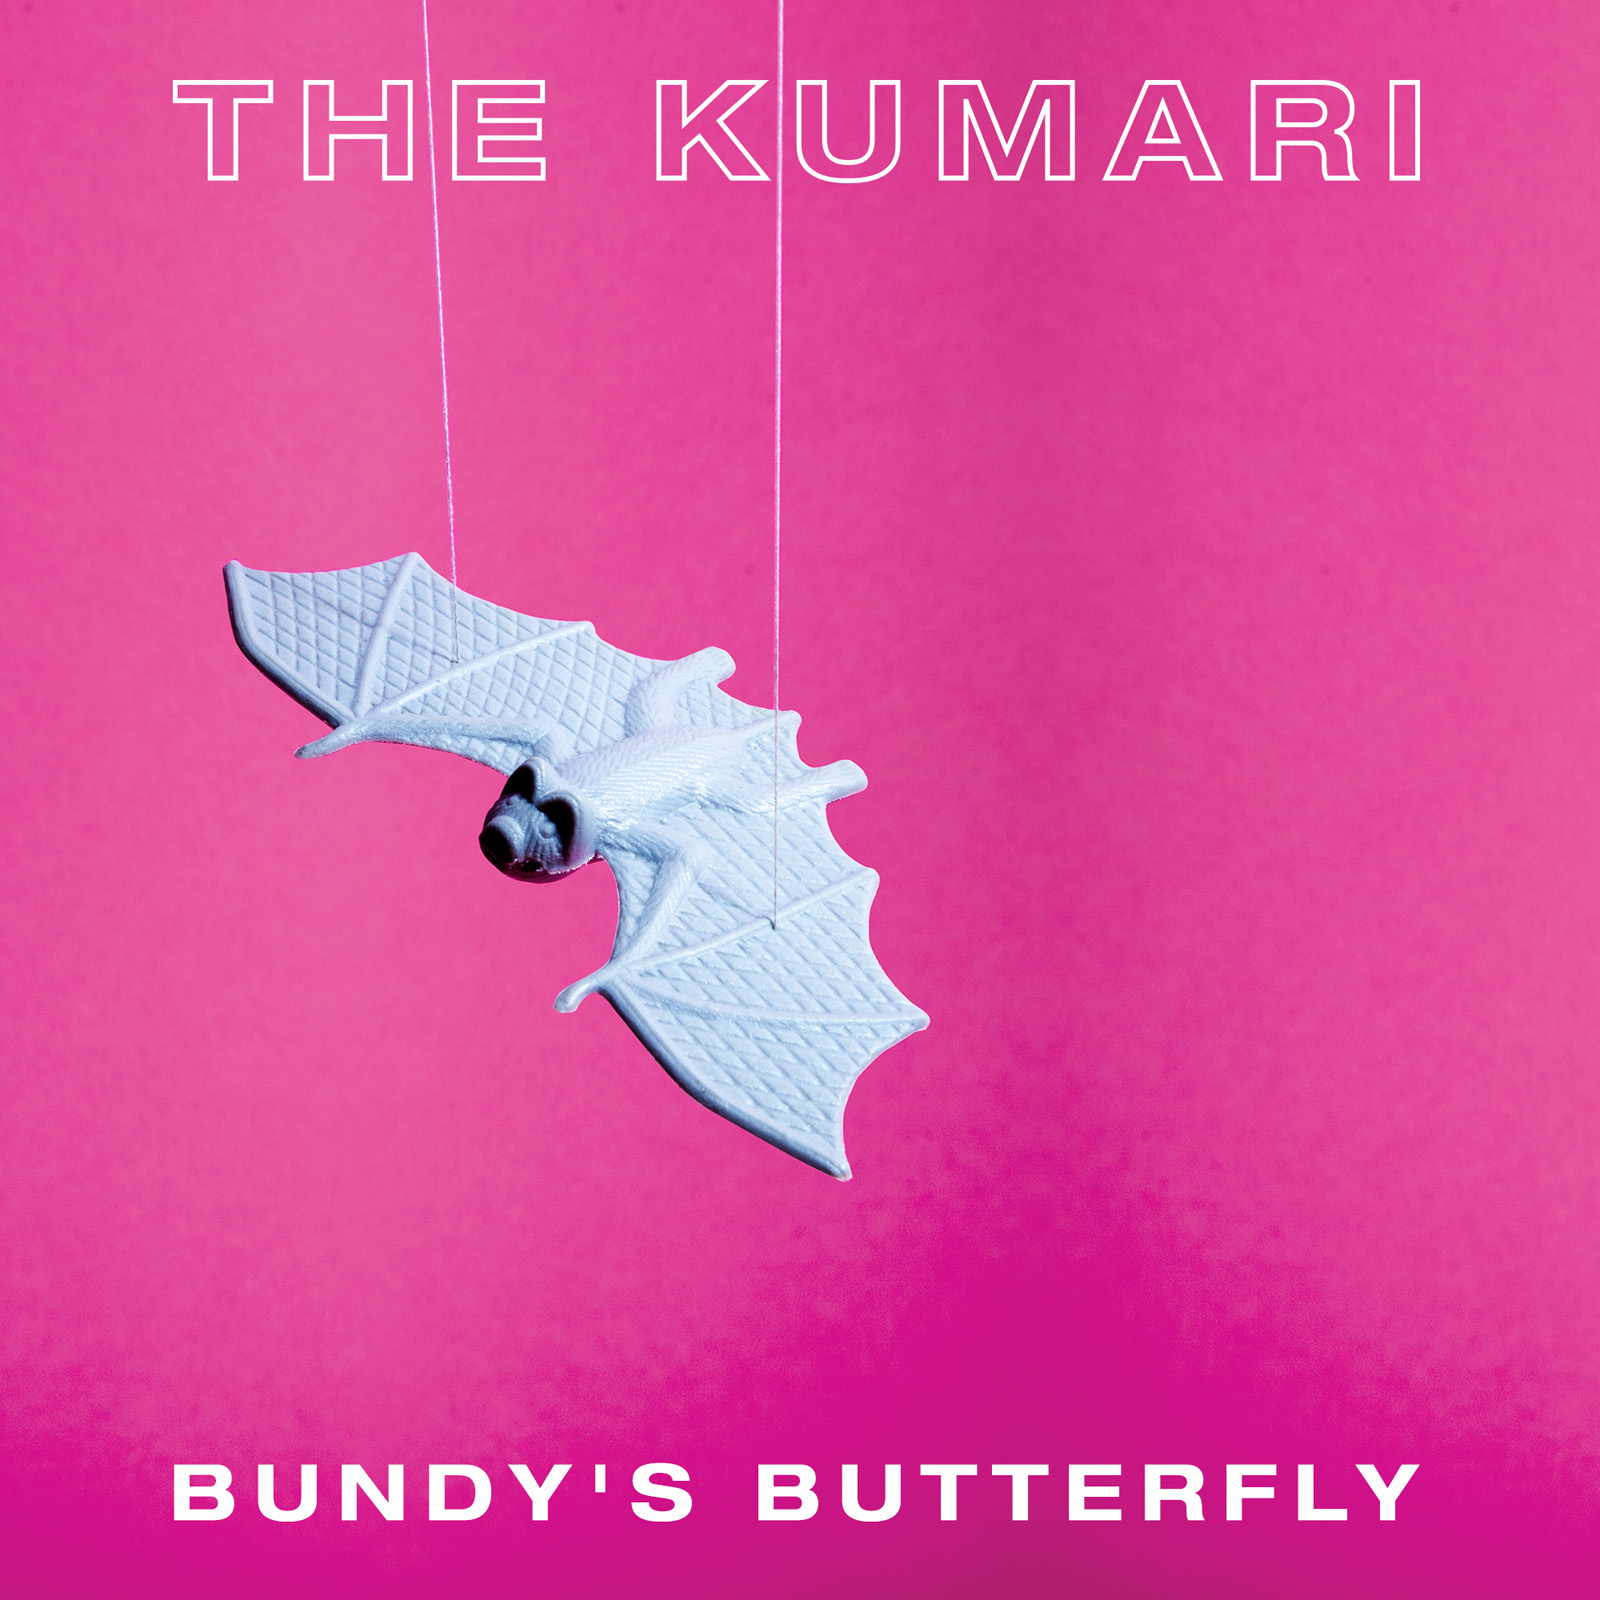 The_Kumari_Bundy's_B_single 1600